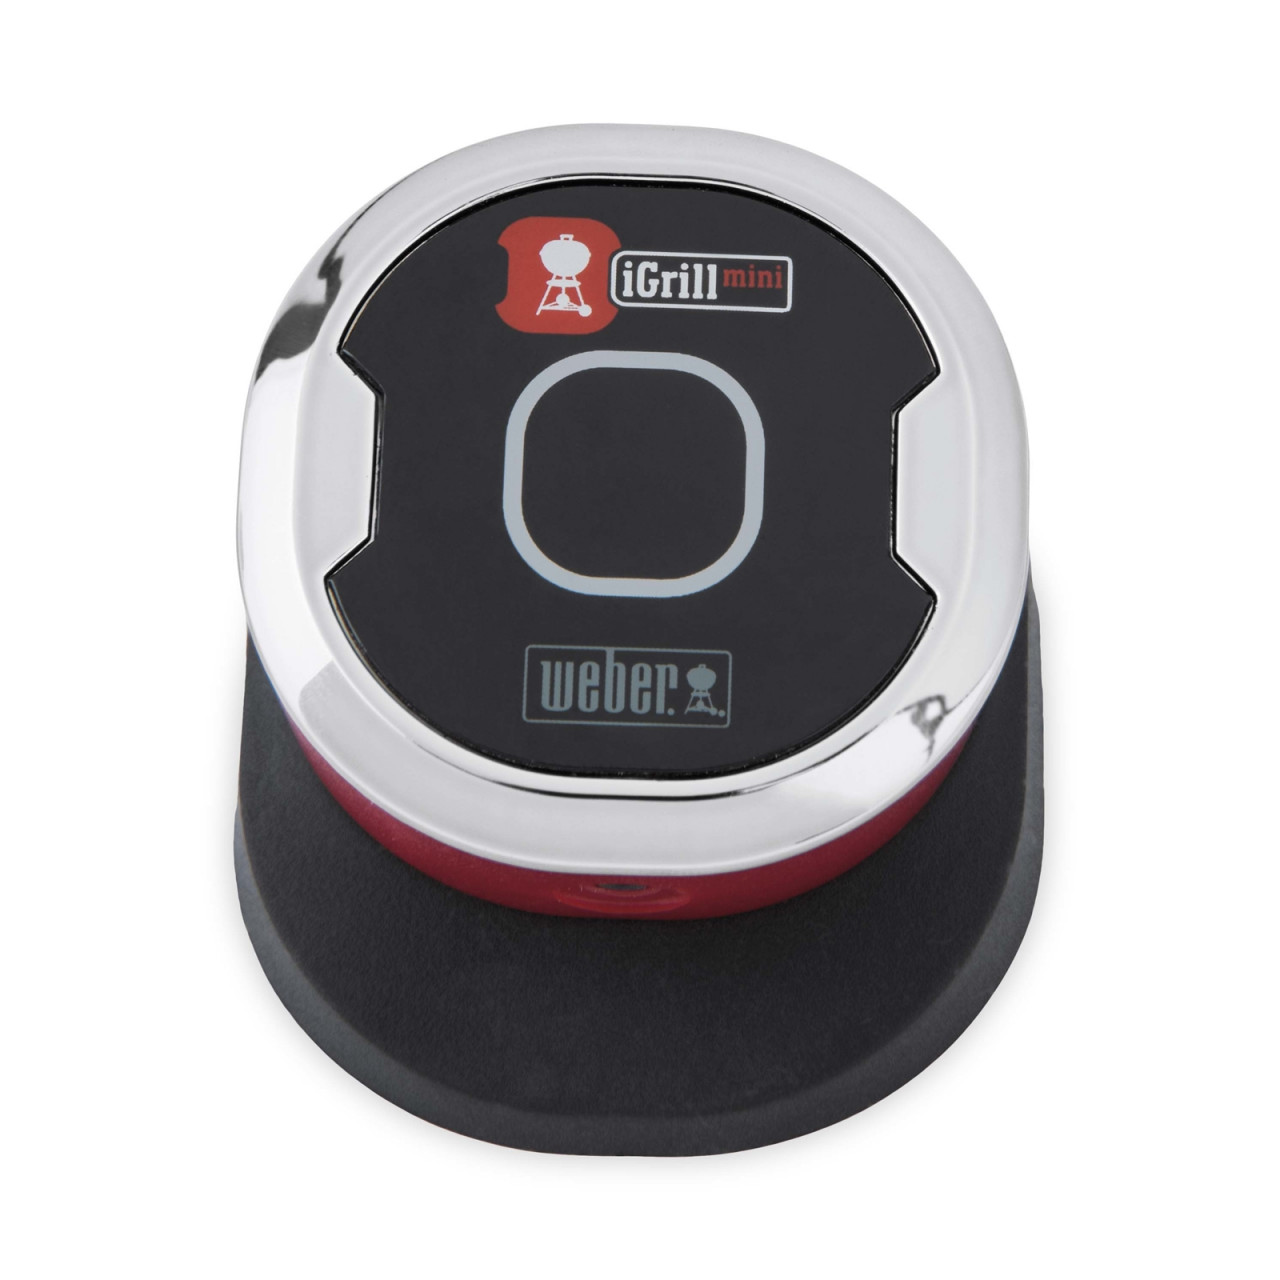 Weber Thermometer iGrill mini mit LED